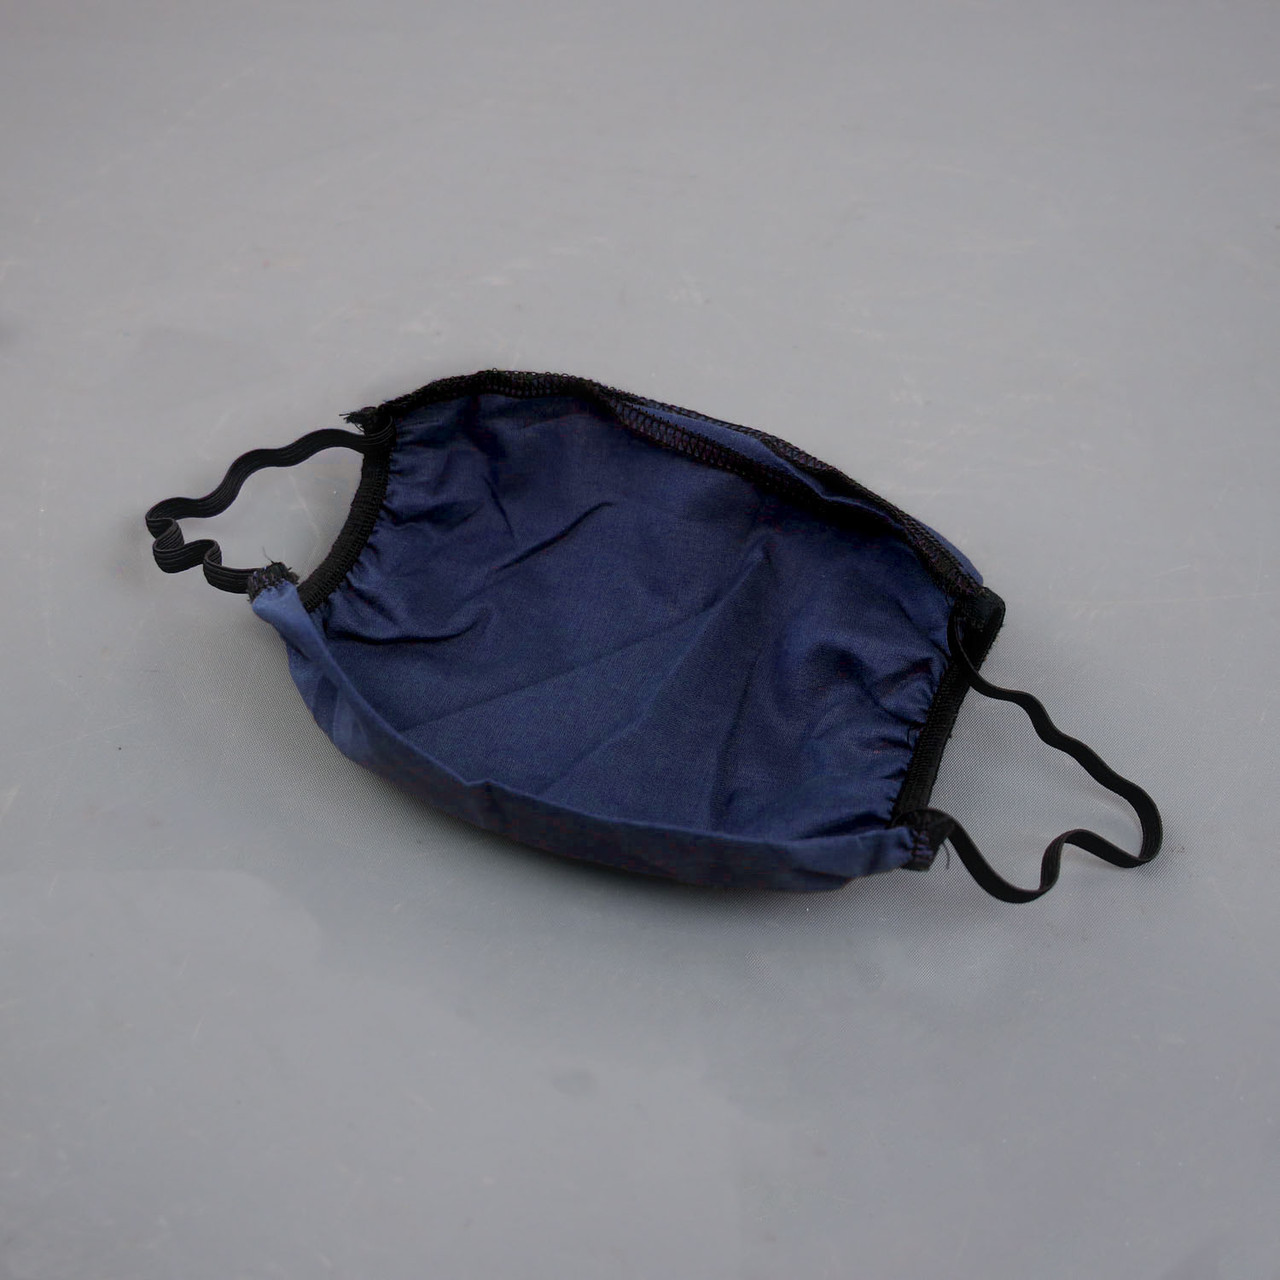 Cotton Face Mask with Filter Pocket (without filters)